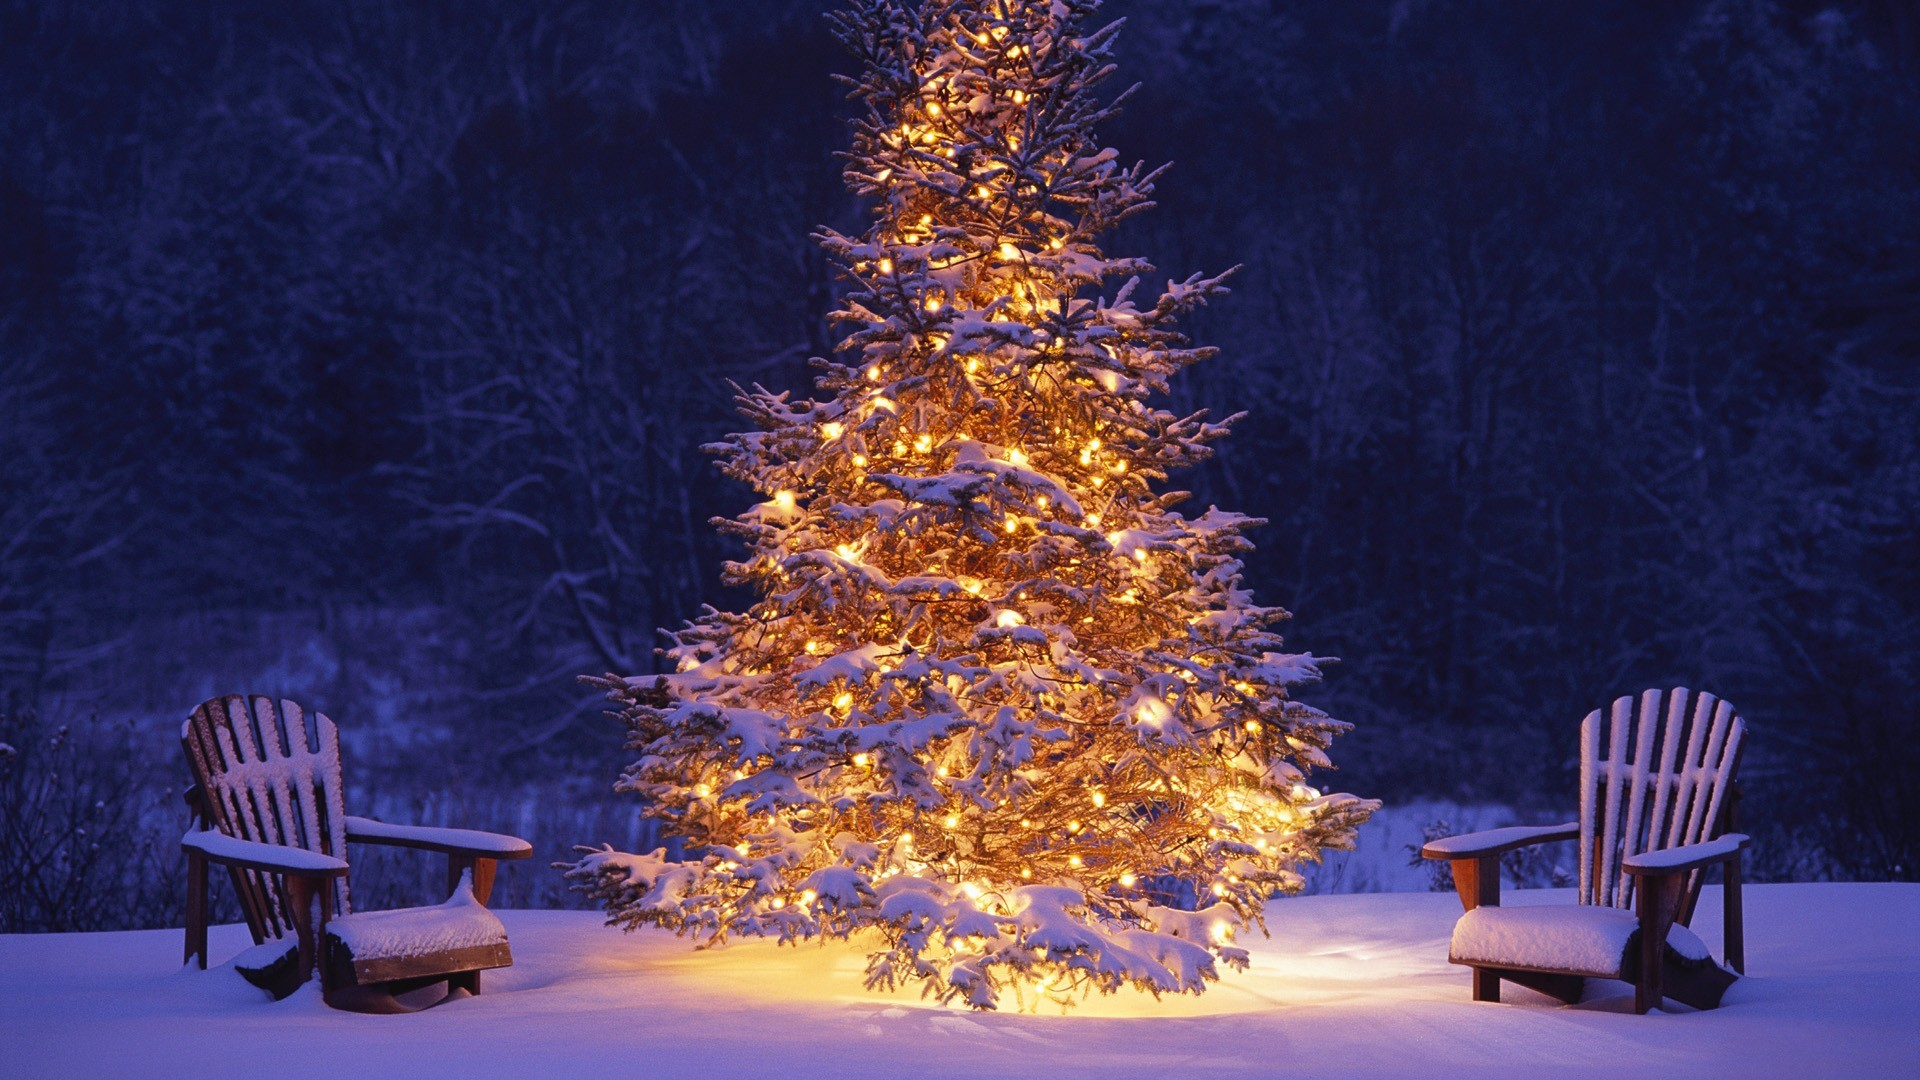 Christmas Background Images Hd.Desktop Christmas Backgrounds 57 Pictures